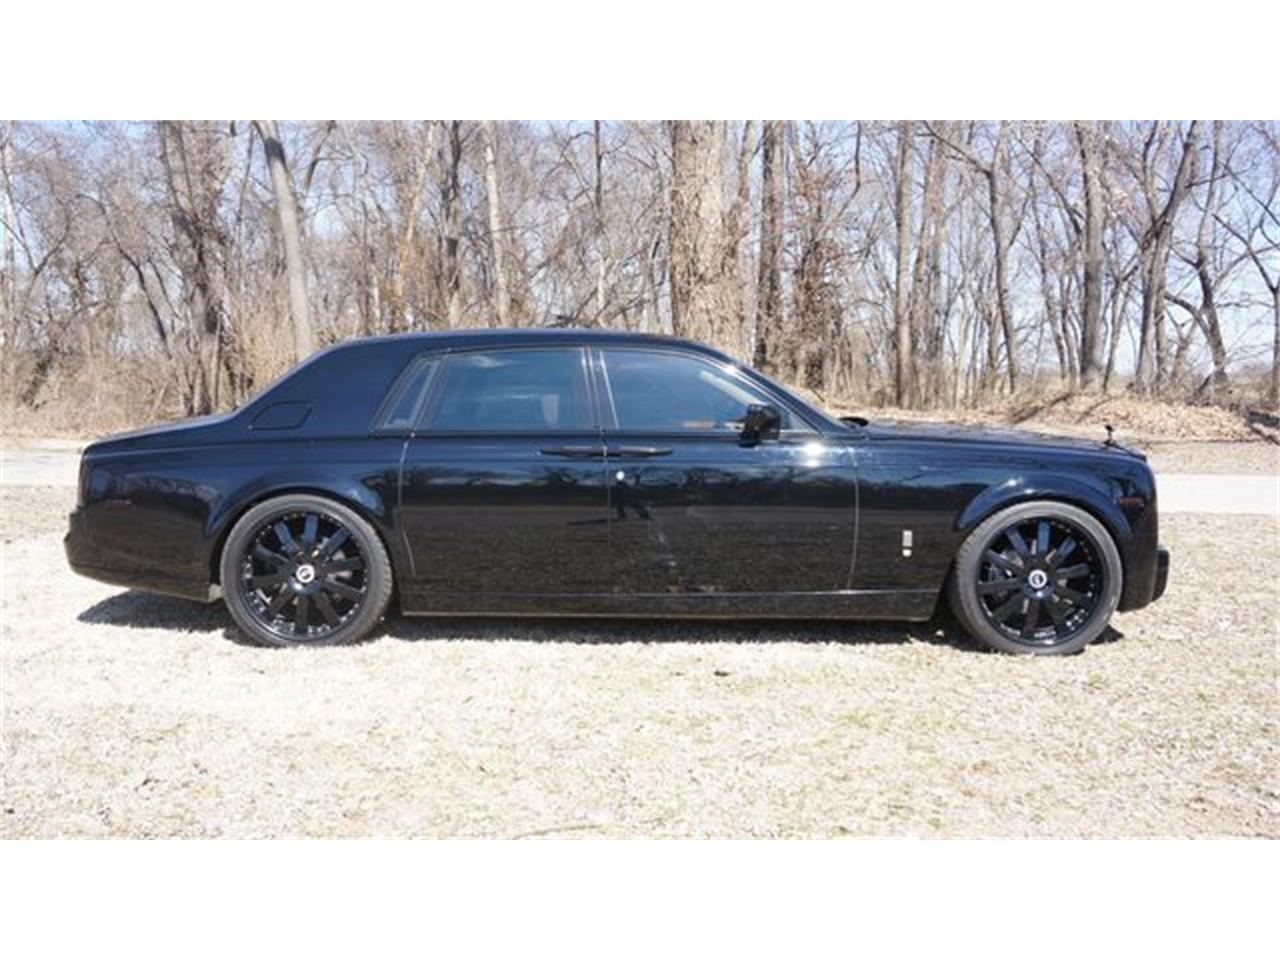 2006 Rolls-Royce Phantom for sale in Valley Park, MO – photo 8